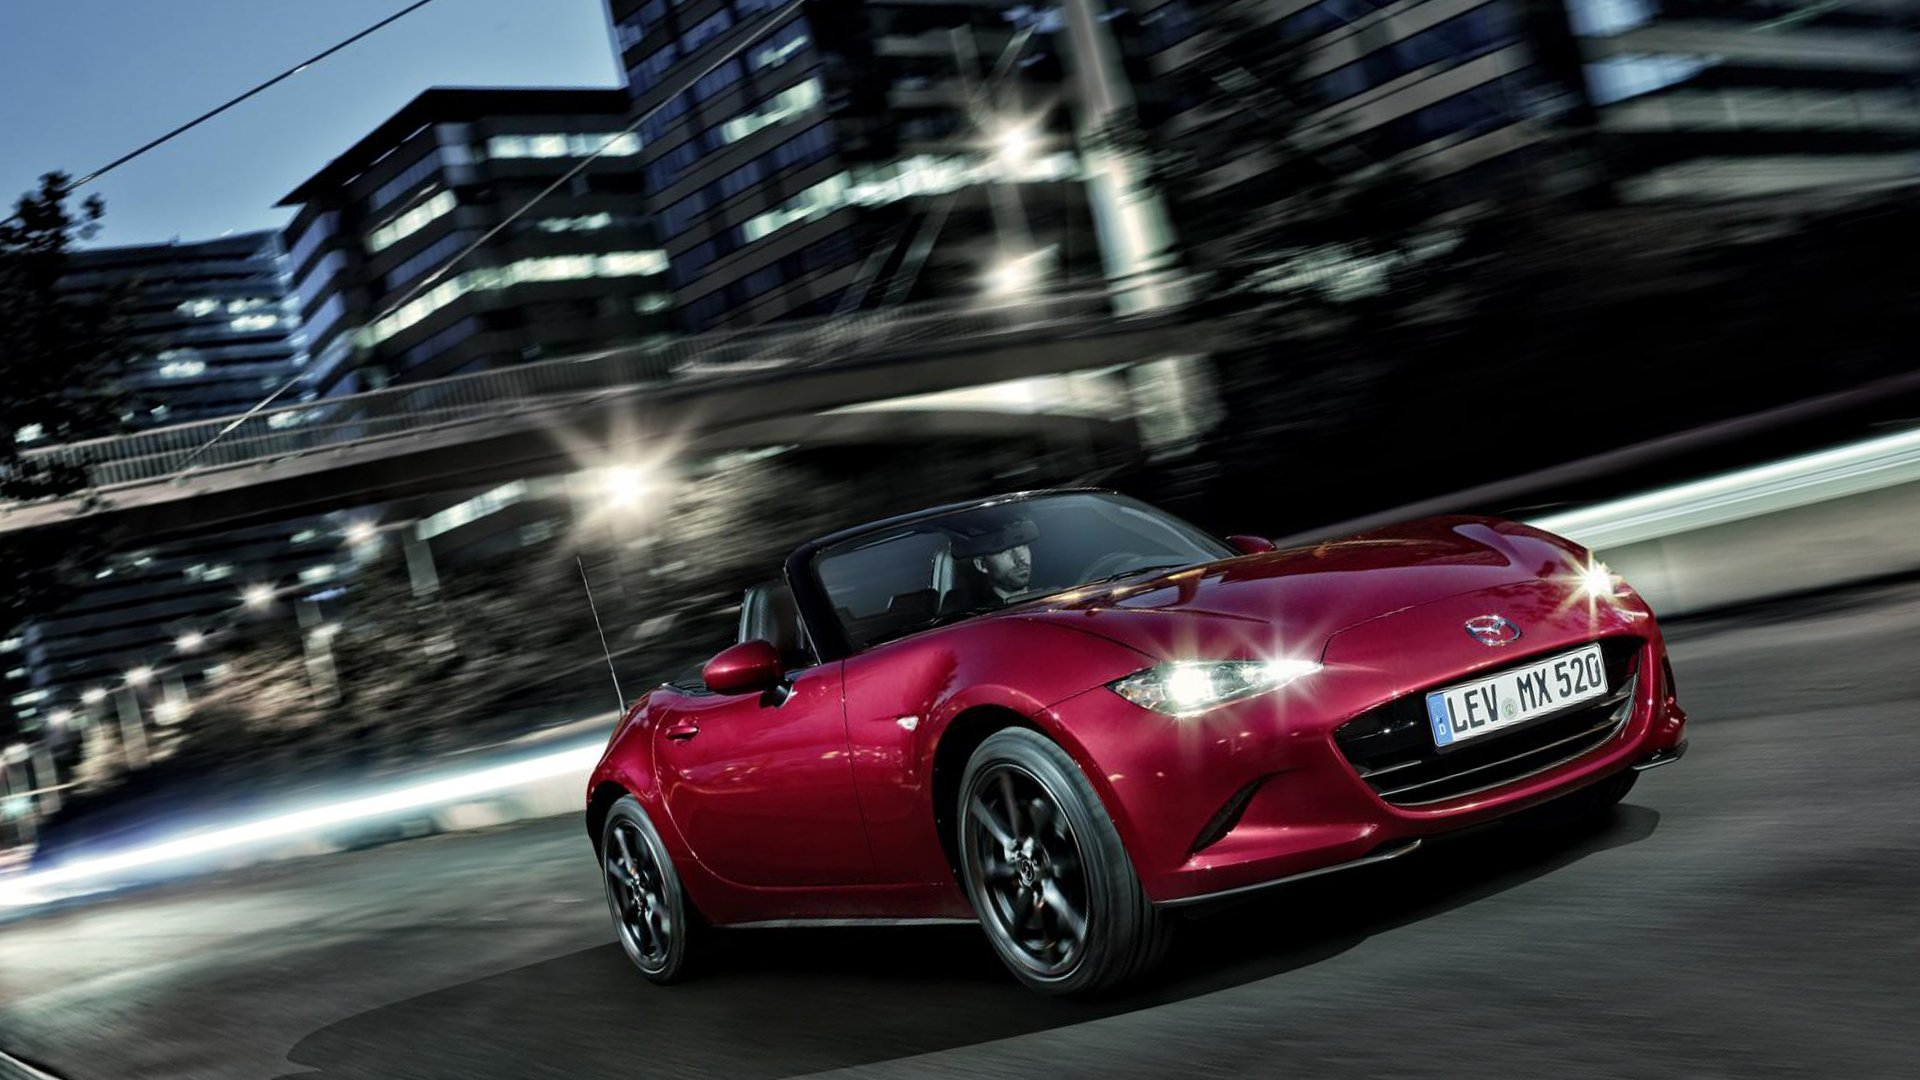 Mazda MX-5 2018 Model Pictures HD